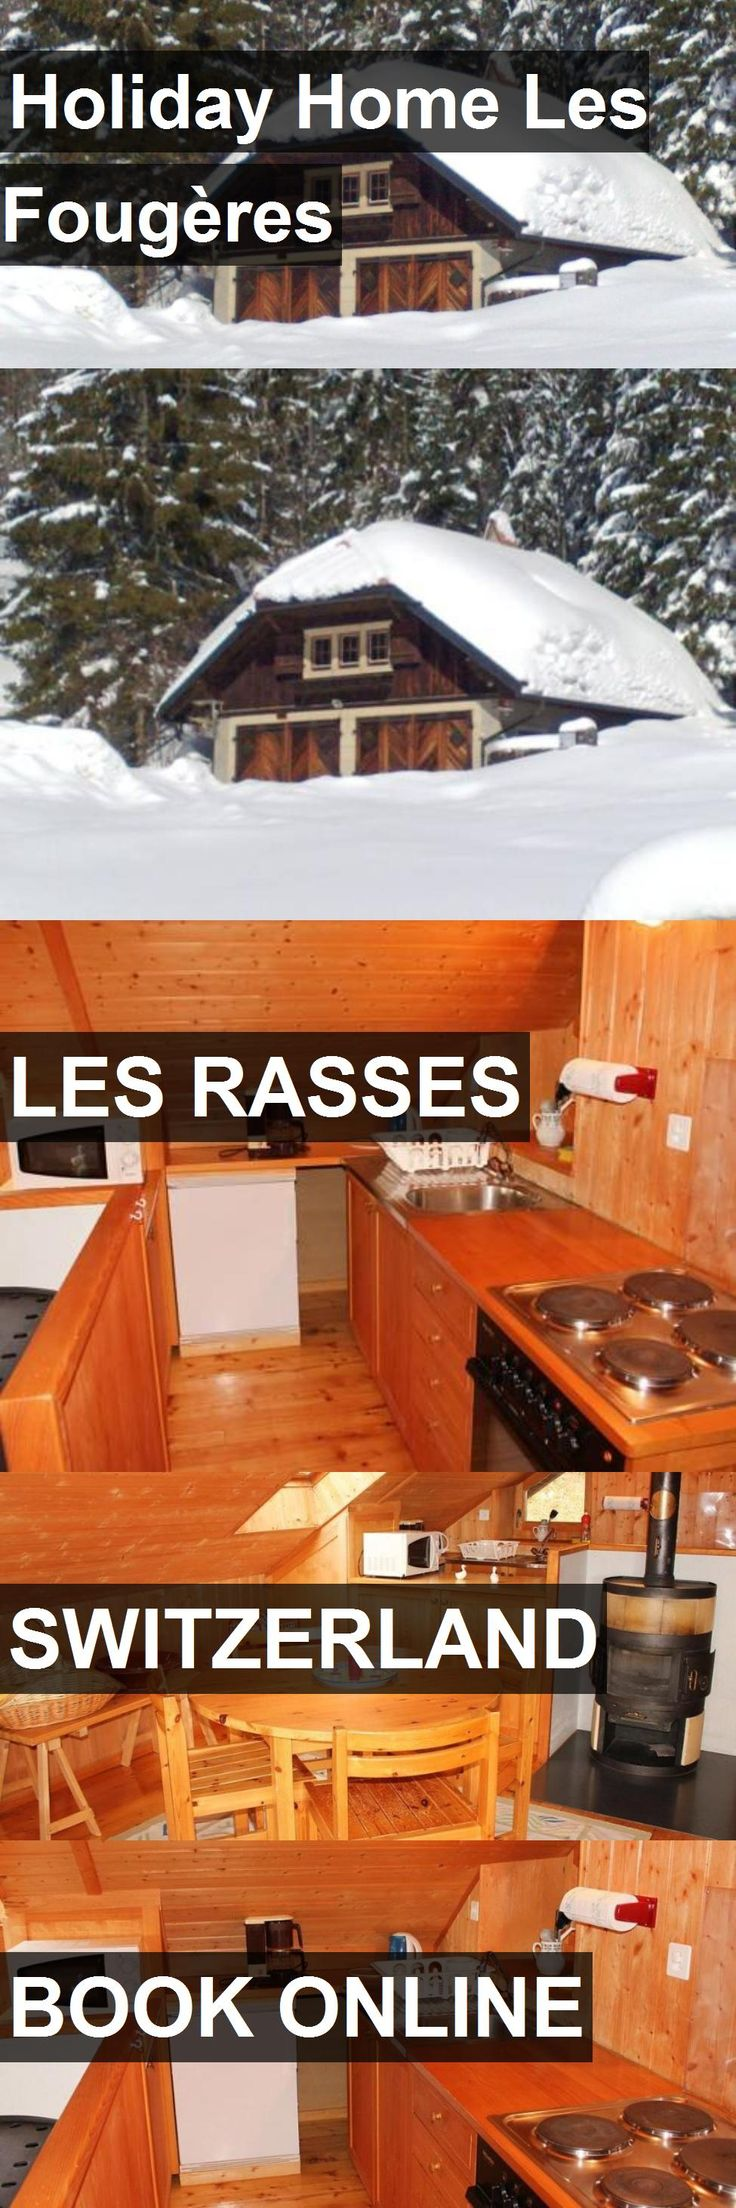 Hotel Holiday Home Les Fougères in Les Rasses, Switzerland. For more information, photos, reviews and best prices please follow the link. #Switzerland #LesRasses #travel #vacation #hotel